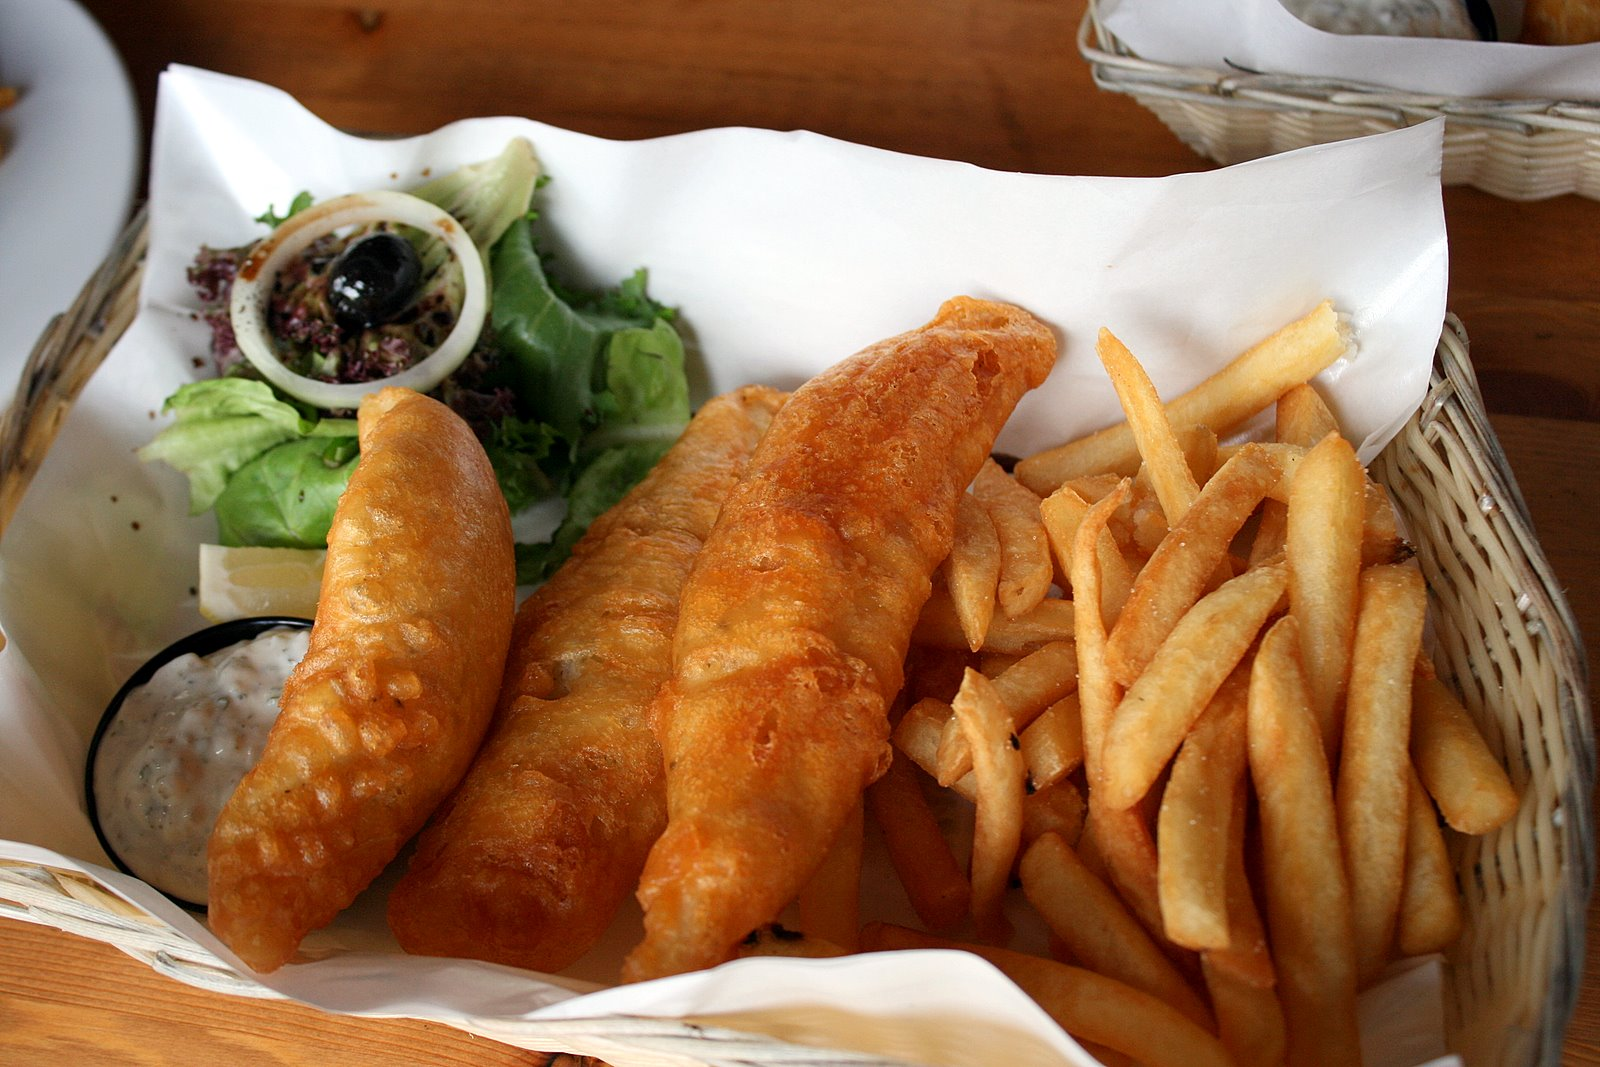 Smok 39 inn frogz kitchen and bar bar black sheep camemberu for Beer battered fish and chips